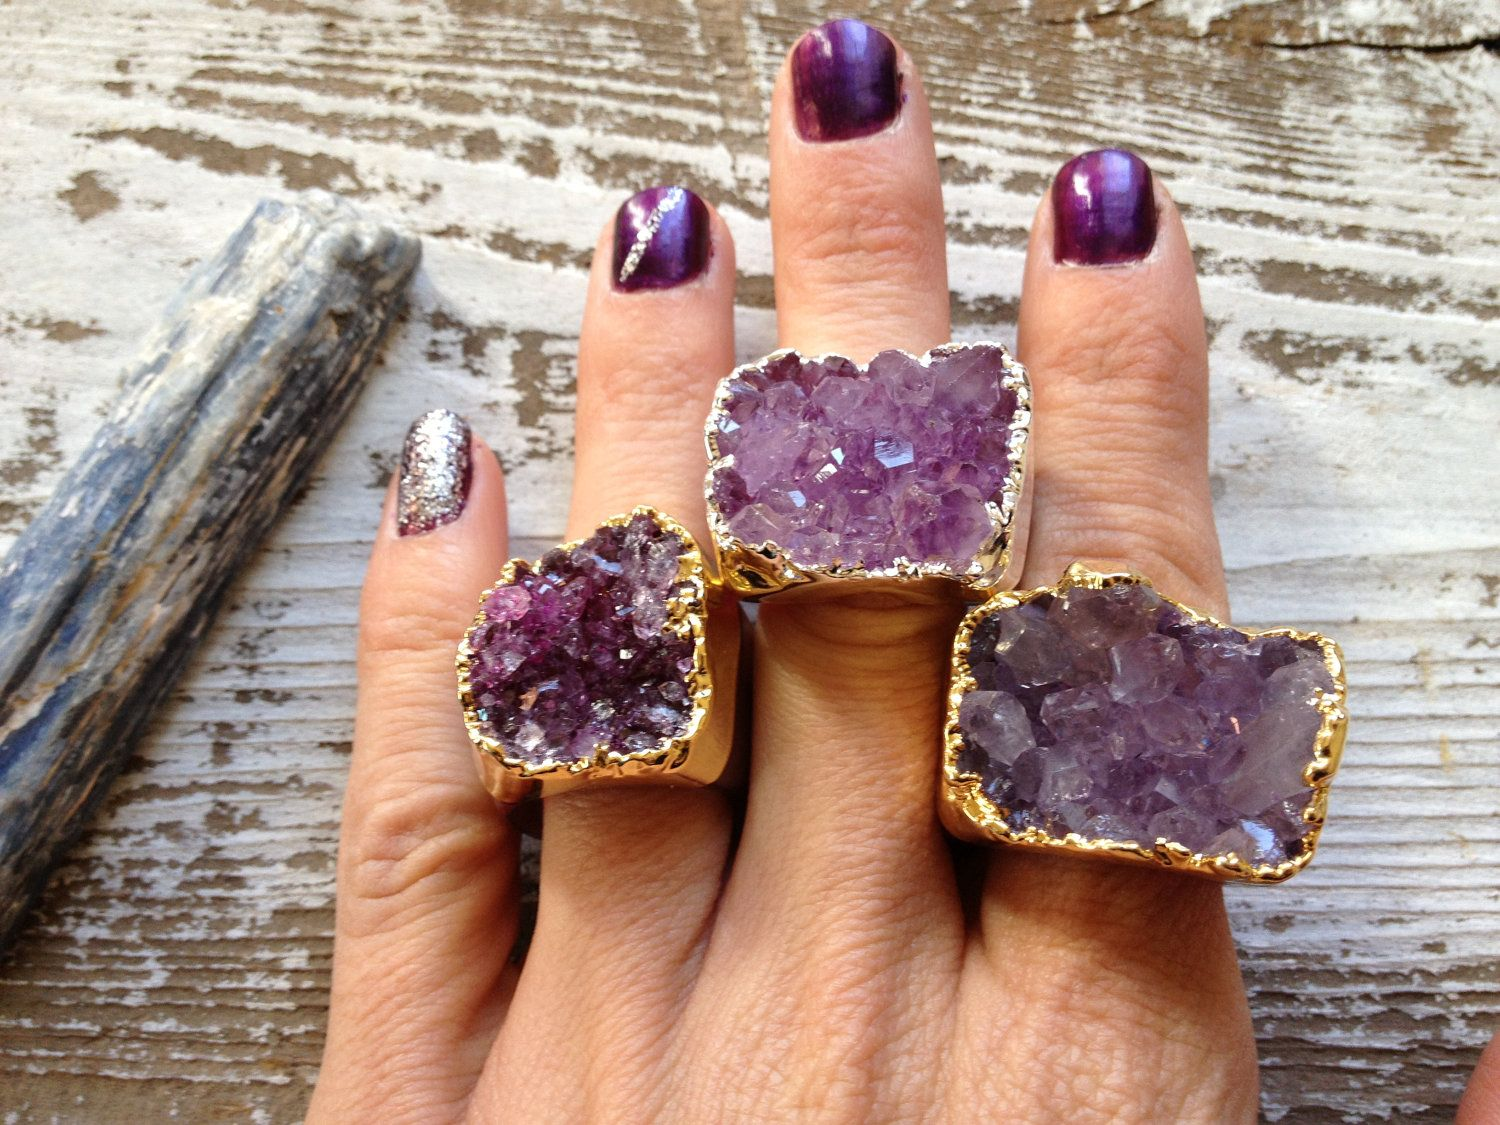 GALACTIC / Raw Druzy Agate Carved Crystal Gold/Silver Plated Gemstone Super Bold Statement Ring, Winter, Holiday, Fashion, Gift. $48.00, via Etsy.